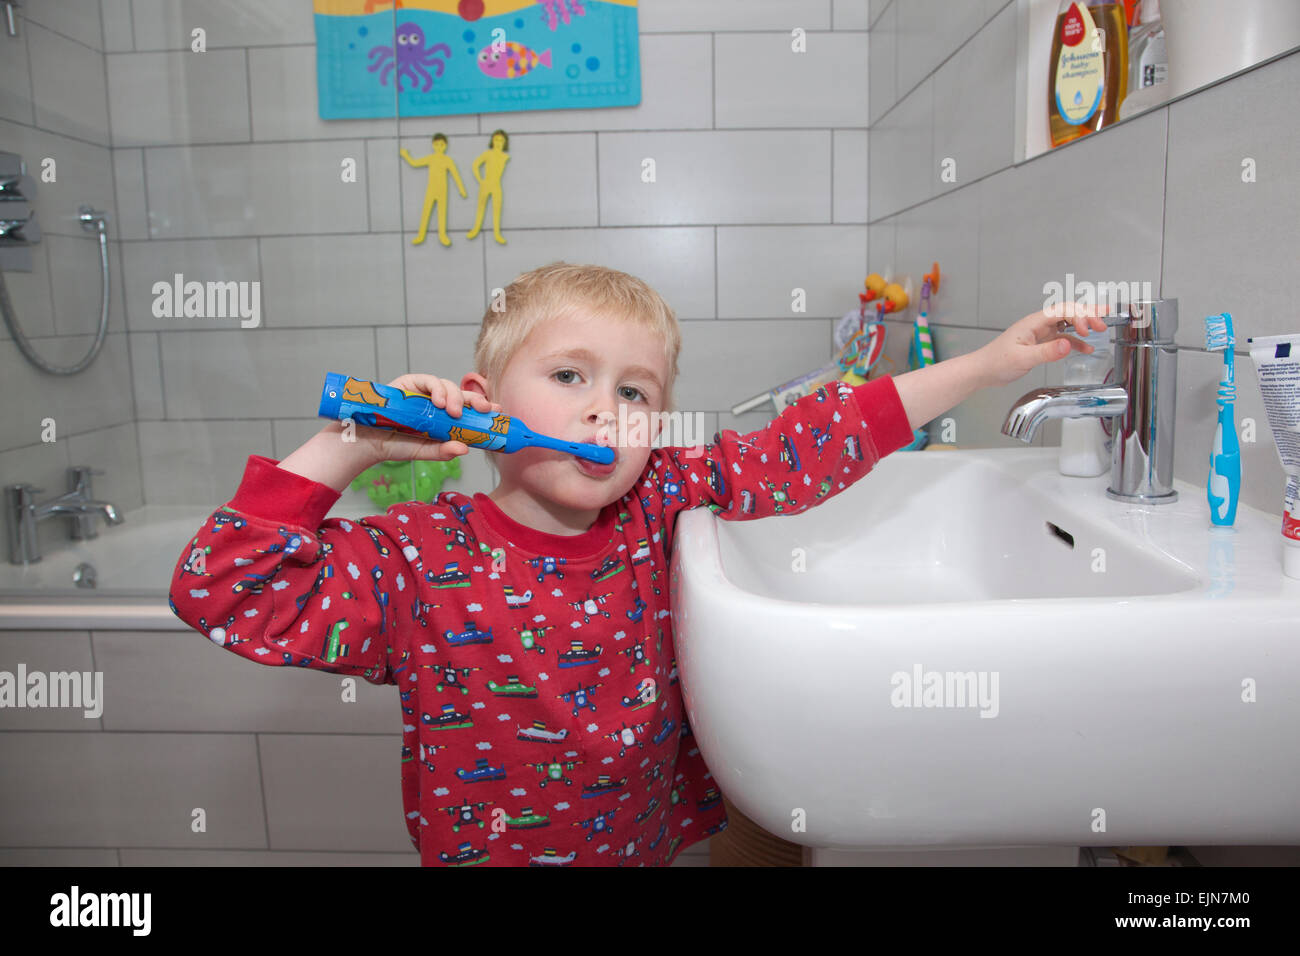 Four year old boy brushing his teeth with an electric toothbrush in the bathroom before bedtime, UK Stock Photo